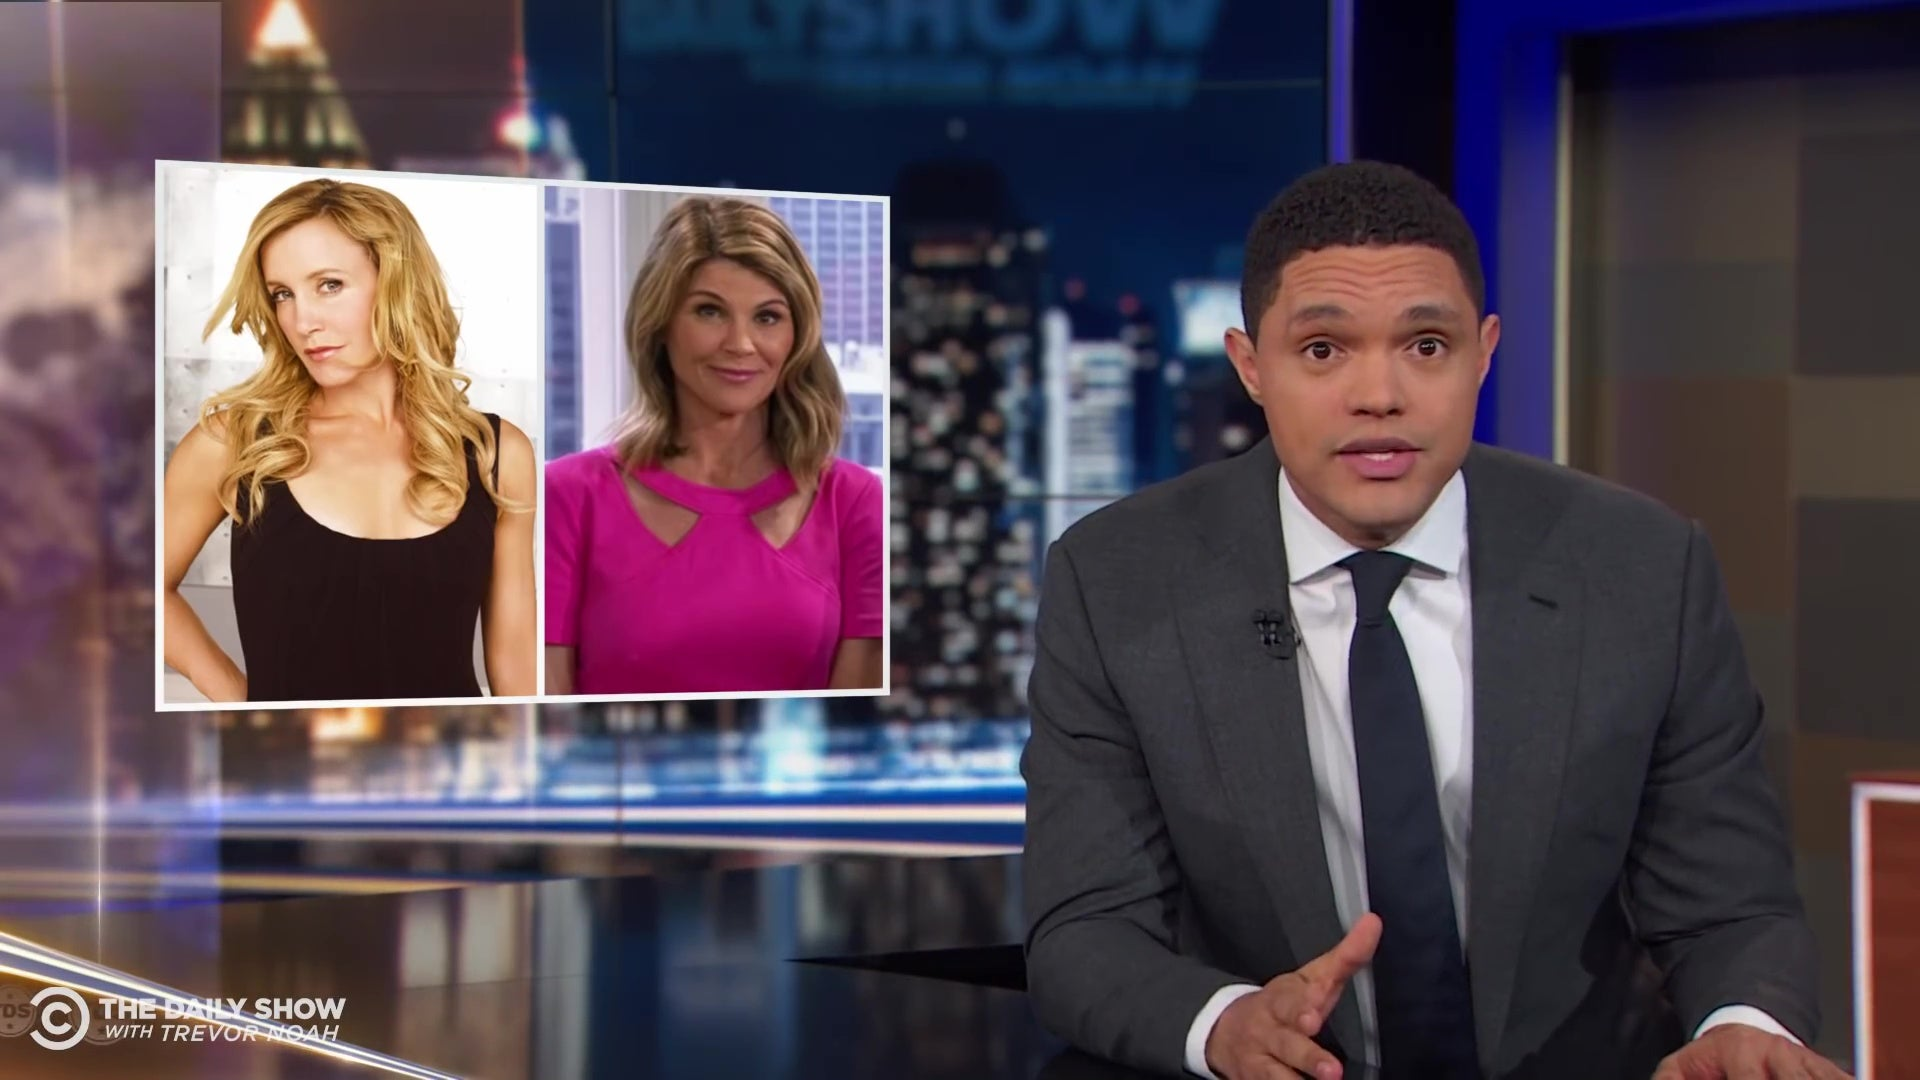 Trevor Noah in front of photos of Felicity Huffman and Lori Loughlin.